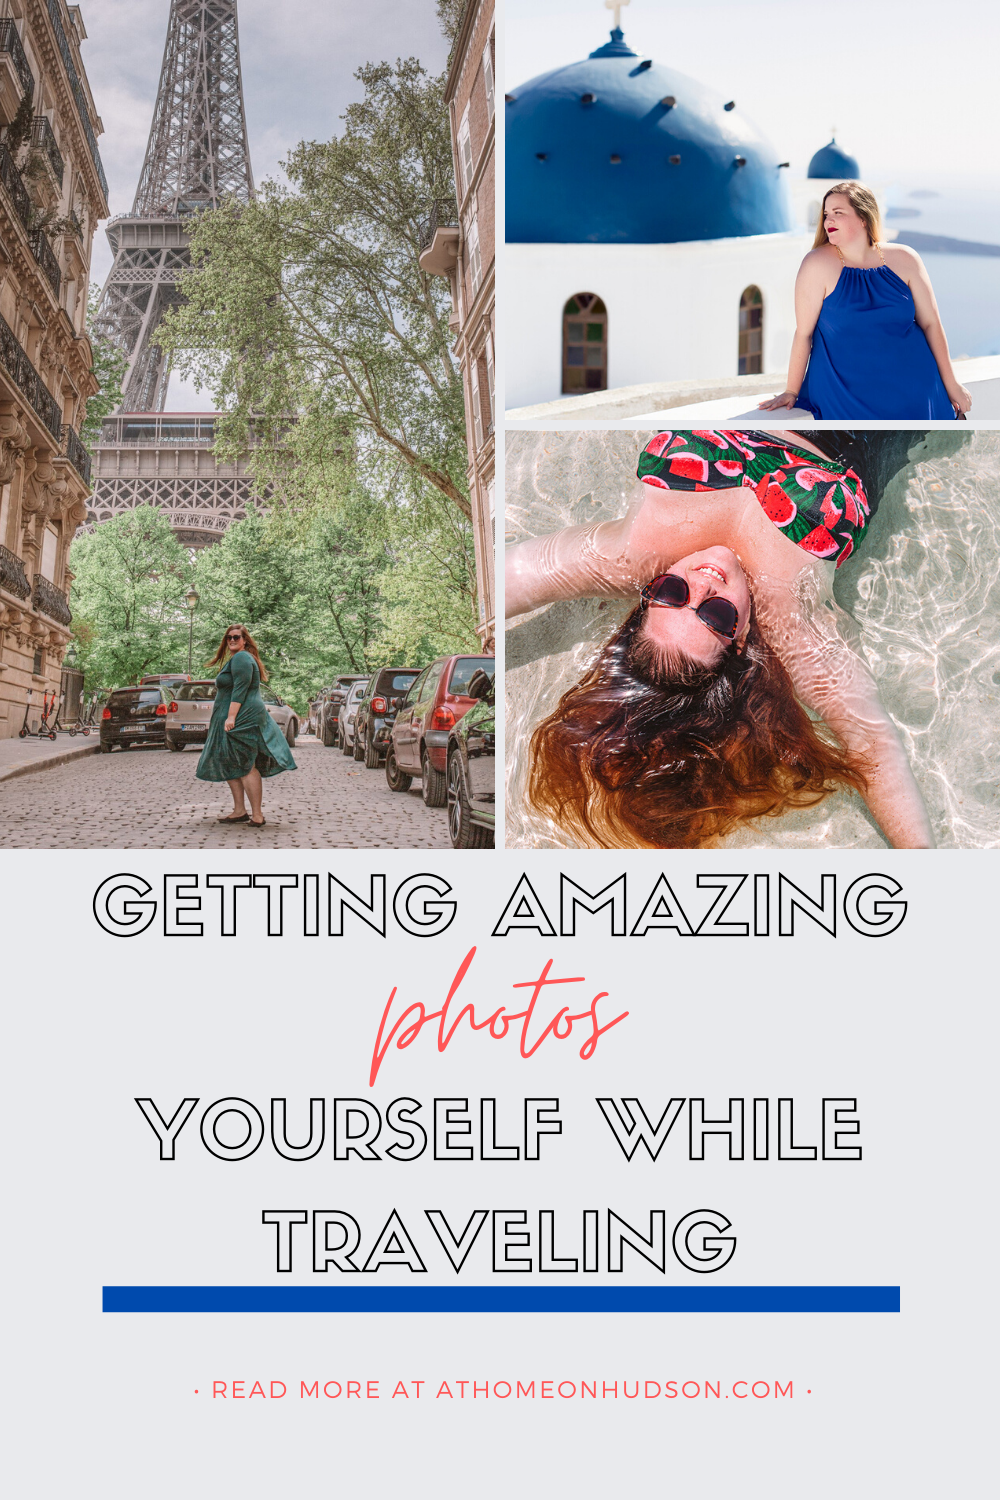 Getting amazing photos to share on social media has never been easier than with these tips and tricks that I have used extensively! Here is how to get incredible photos of yourself while traveling from a professional photographer.